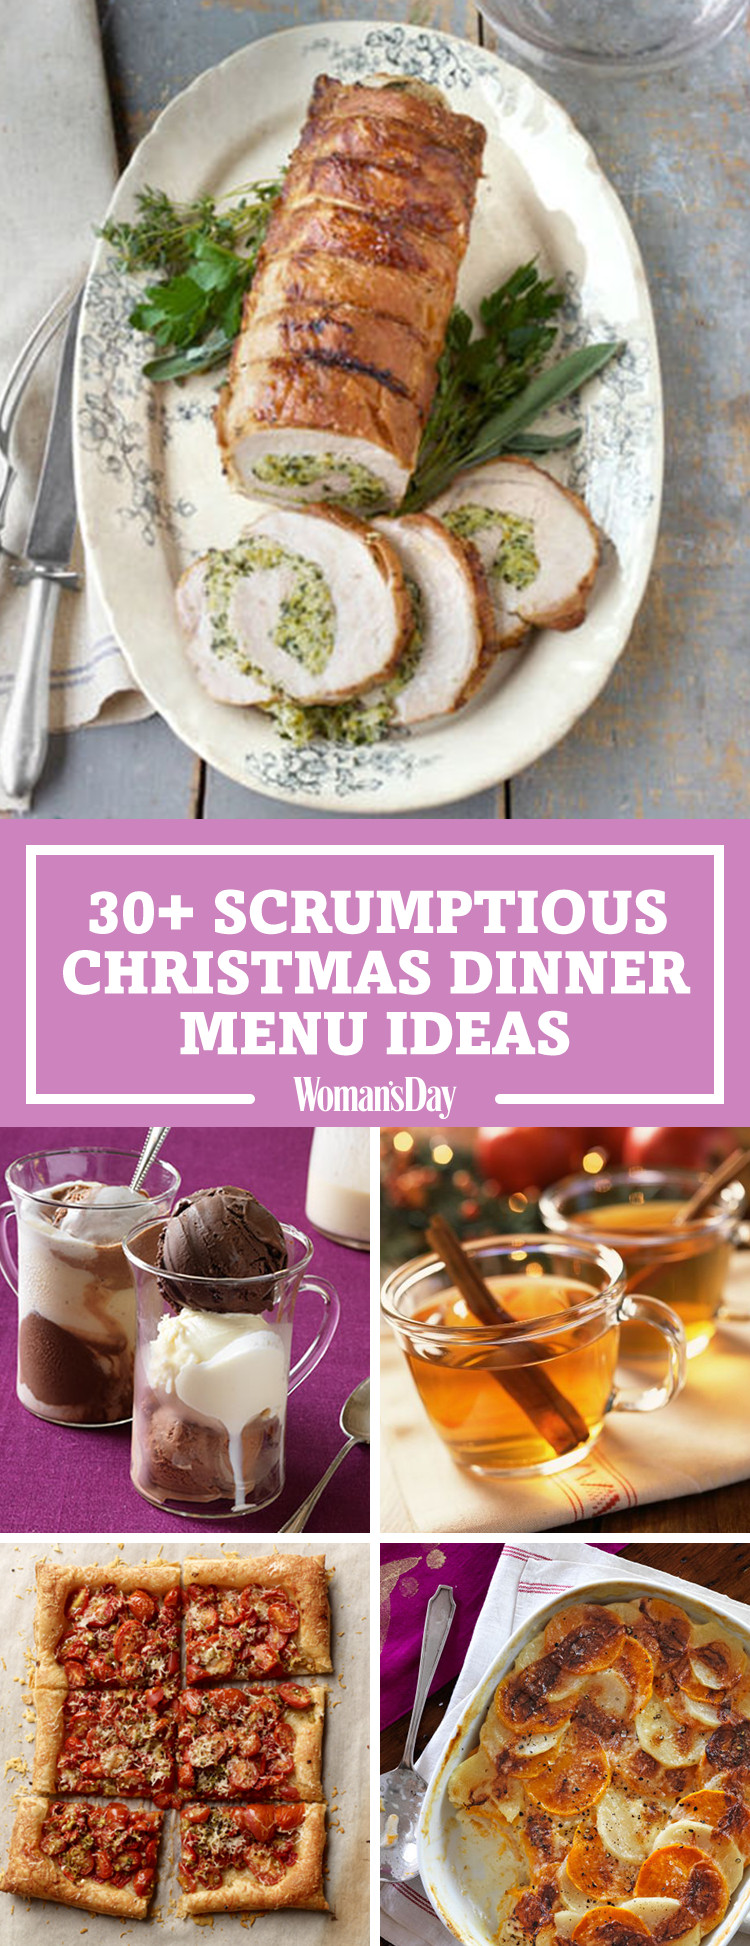 Whole Foods Christmas Dinner  Best Christmas Dinner Menu Ideas For 2017 pertaining to